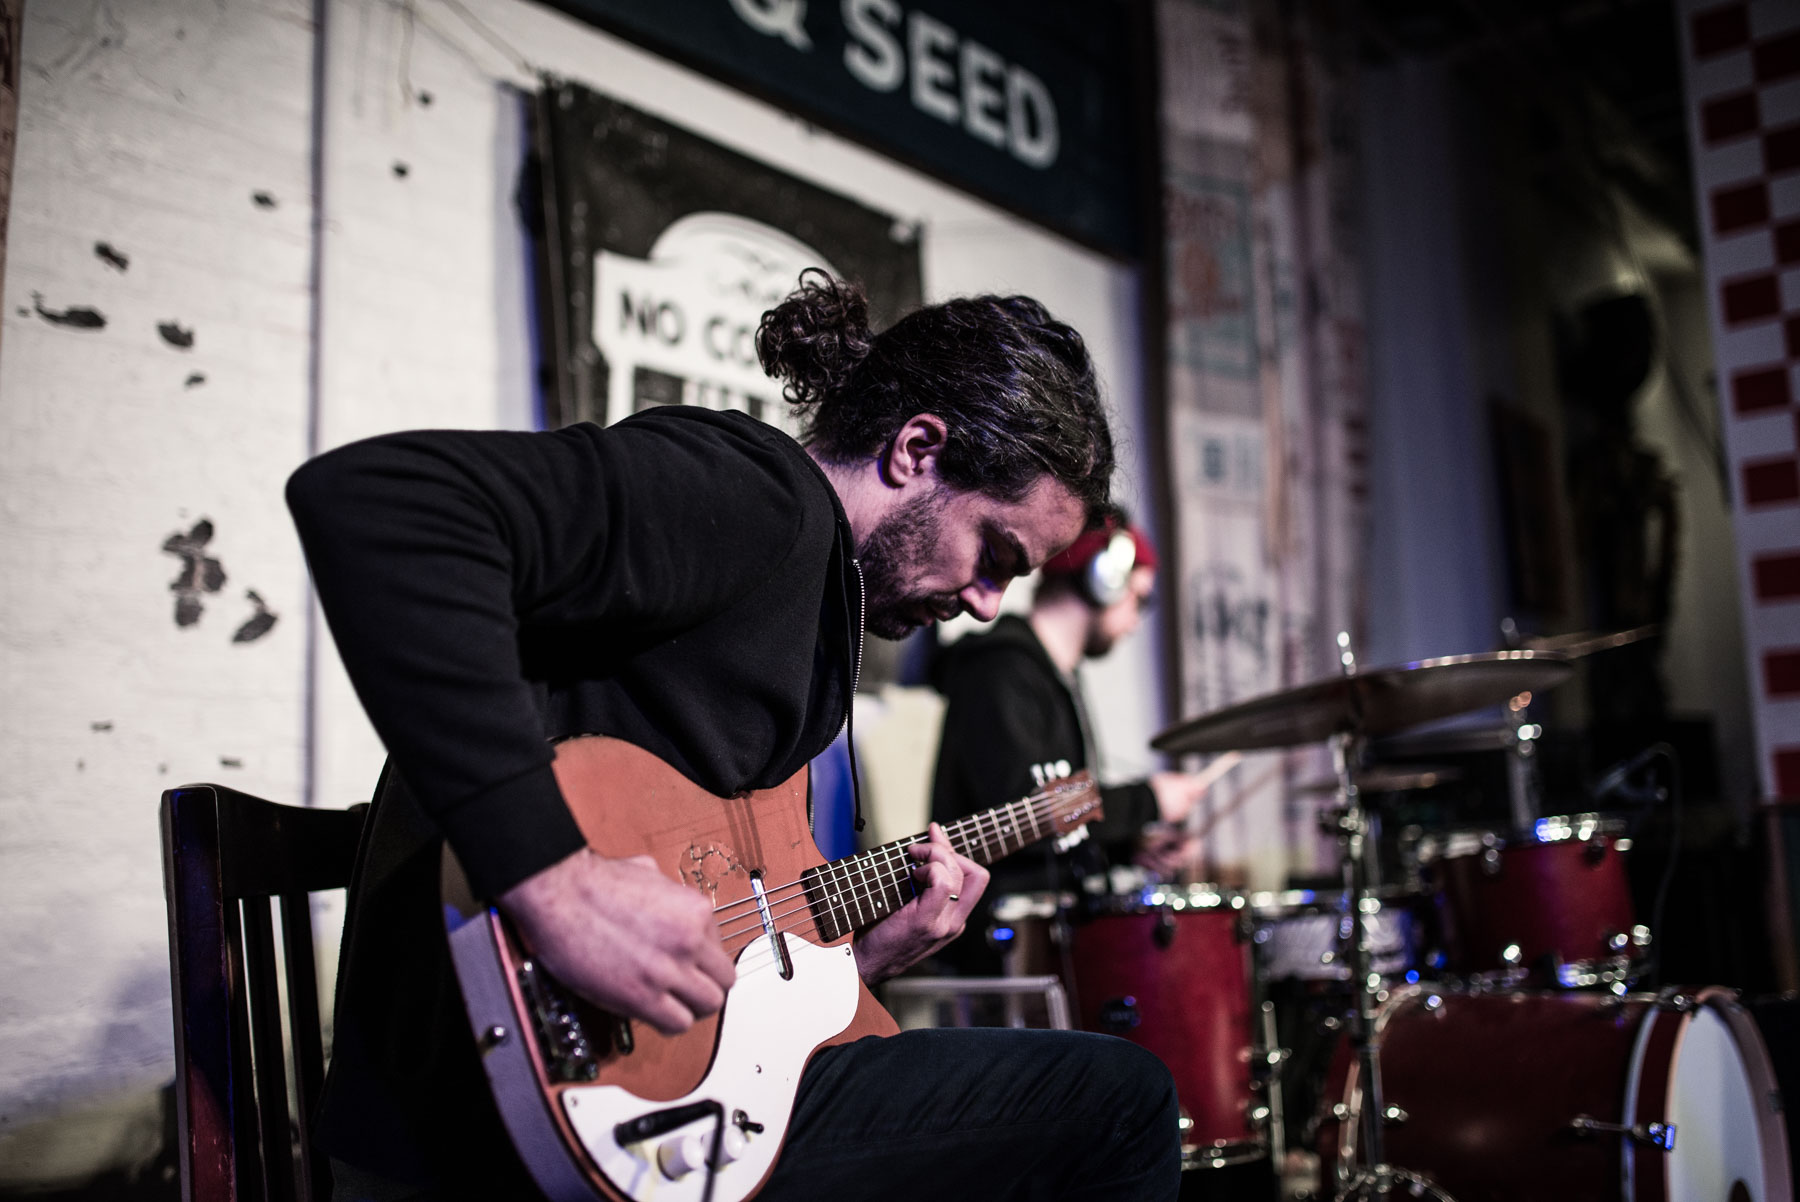 [REVIEW + PHOTOS] Poema, Whissell, & Natalie Royal   2.16.16 @ Acme Feed & Seed